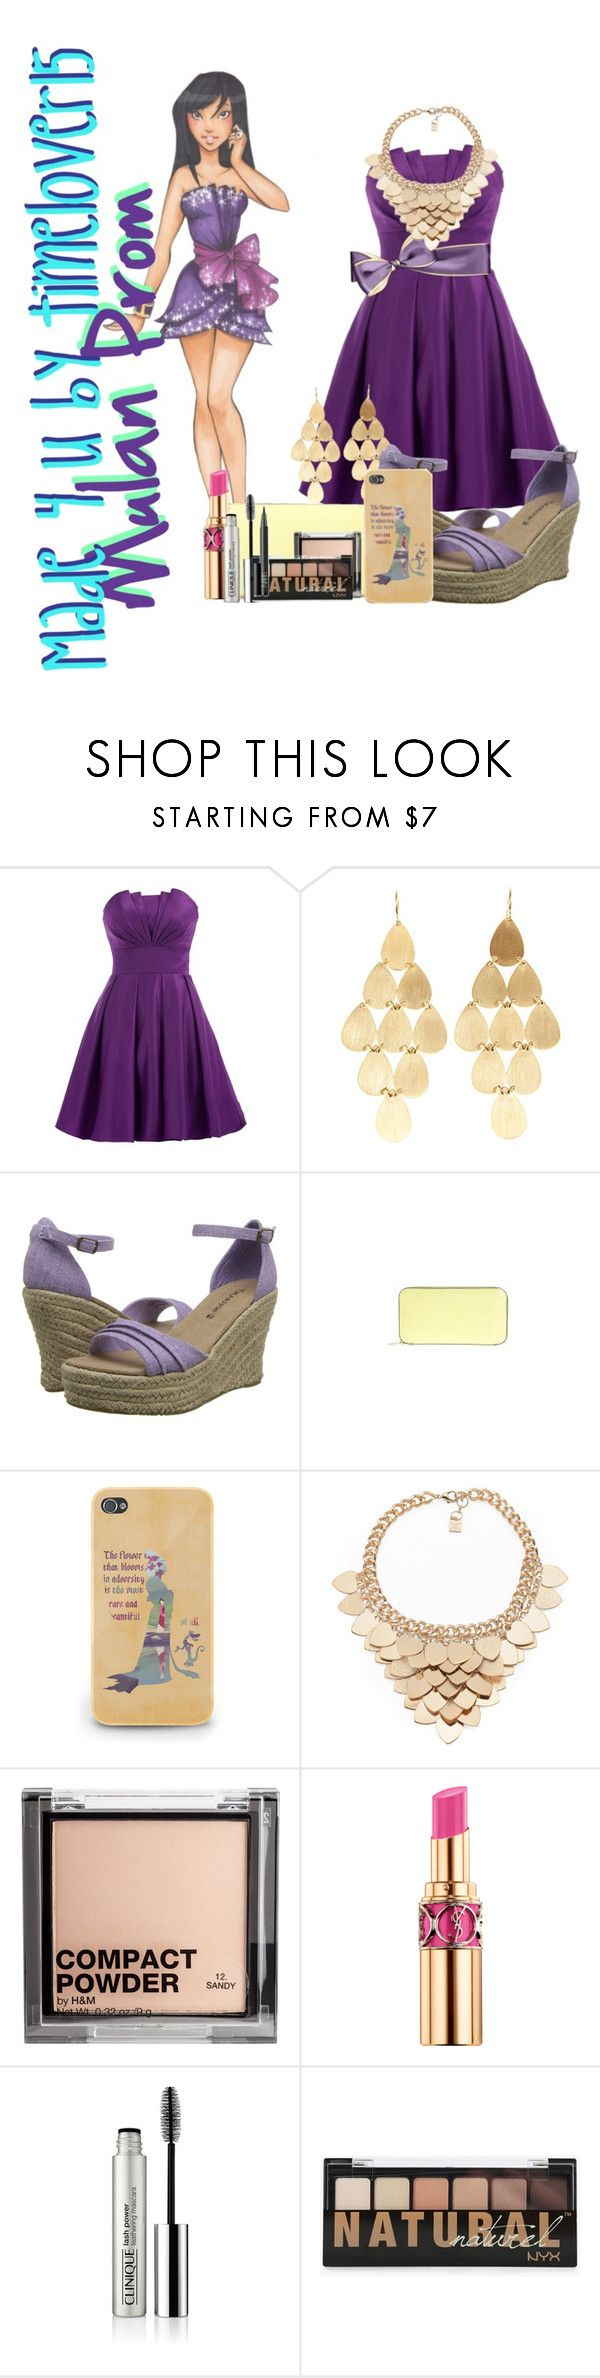 """Mulan prom"" by spectrastarlight ❤ liked on Polyvore featuring Disney, Irene Neuwirth, Bearpaw, Valextra, Kardashian Kollection, H&M, Clinique and NARS Cosmetics"